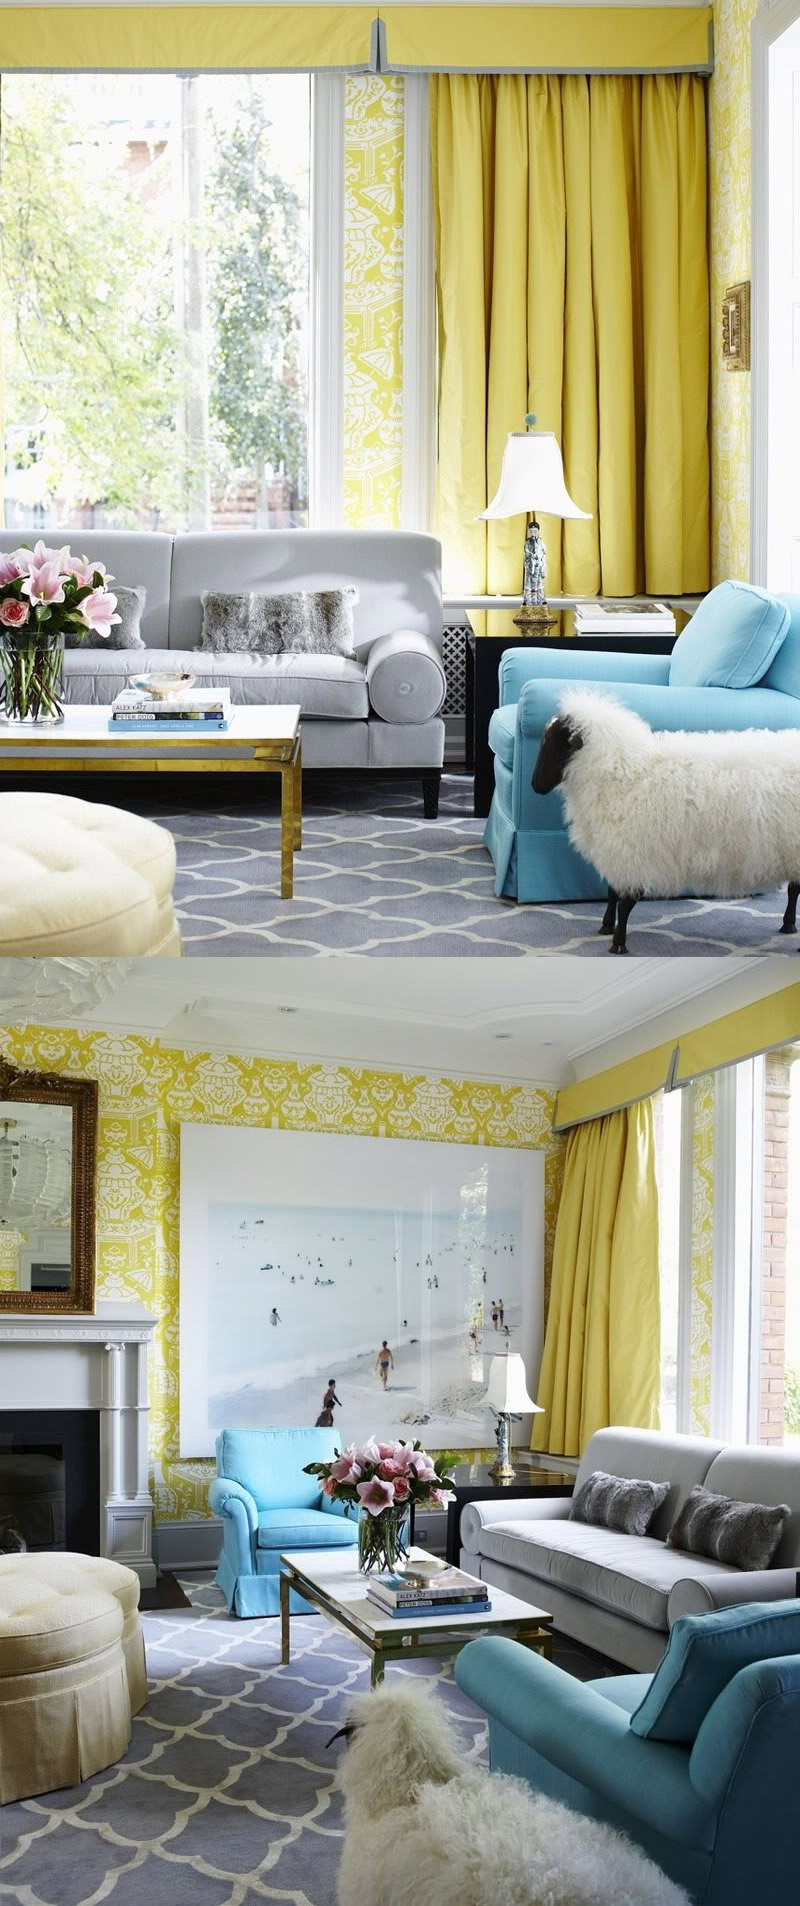 48 yellow duck egg blue grey living room interior design ideas